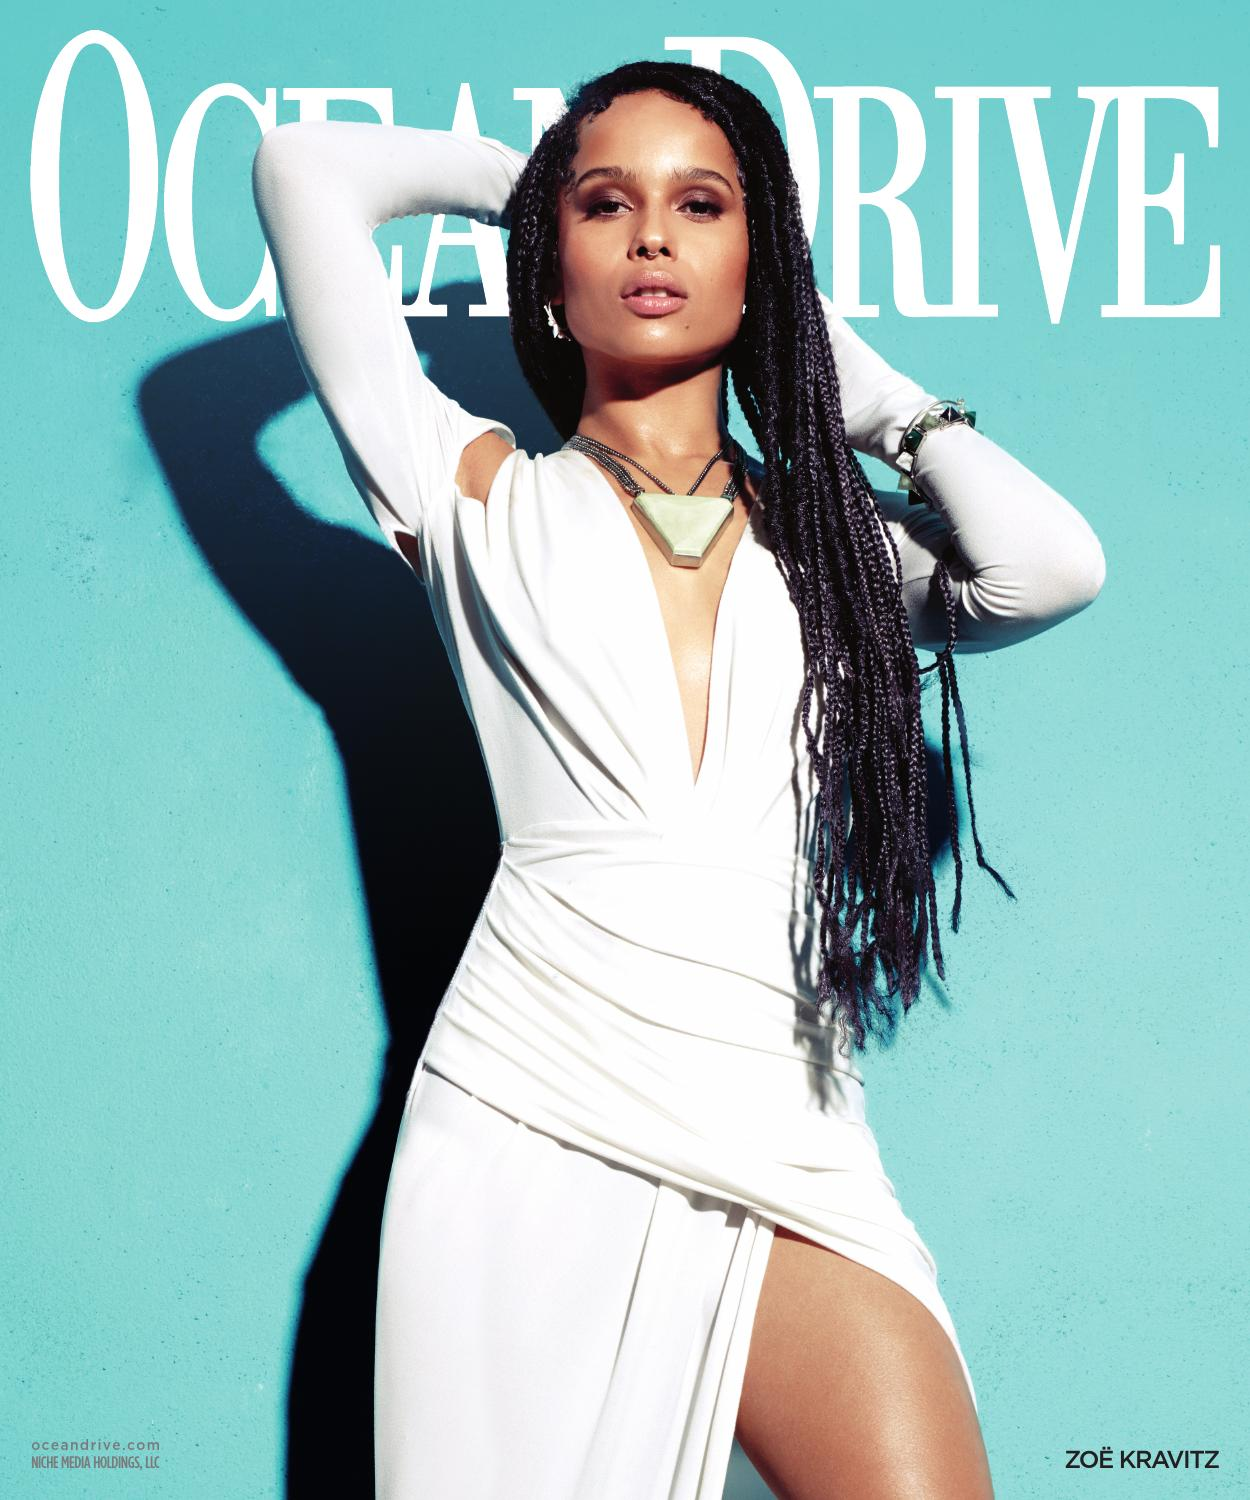 Ocean Drive - 2015 - Issue 3 - March by Niche Media Holdings, LLC ...